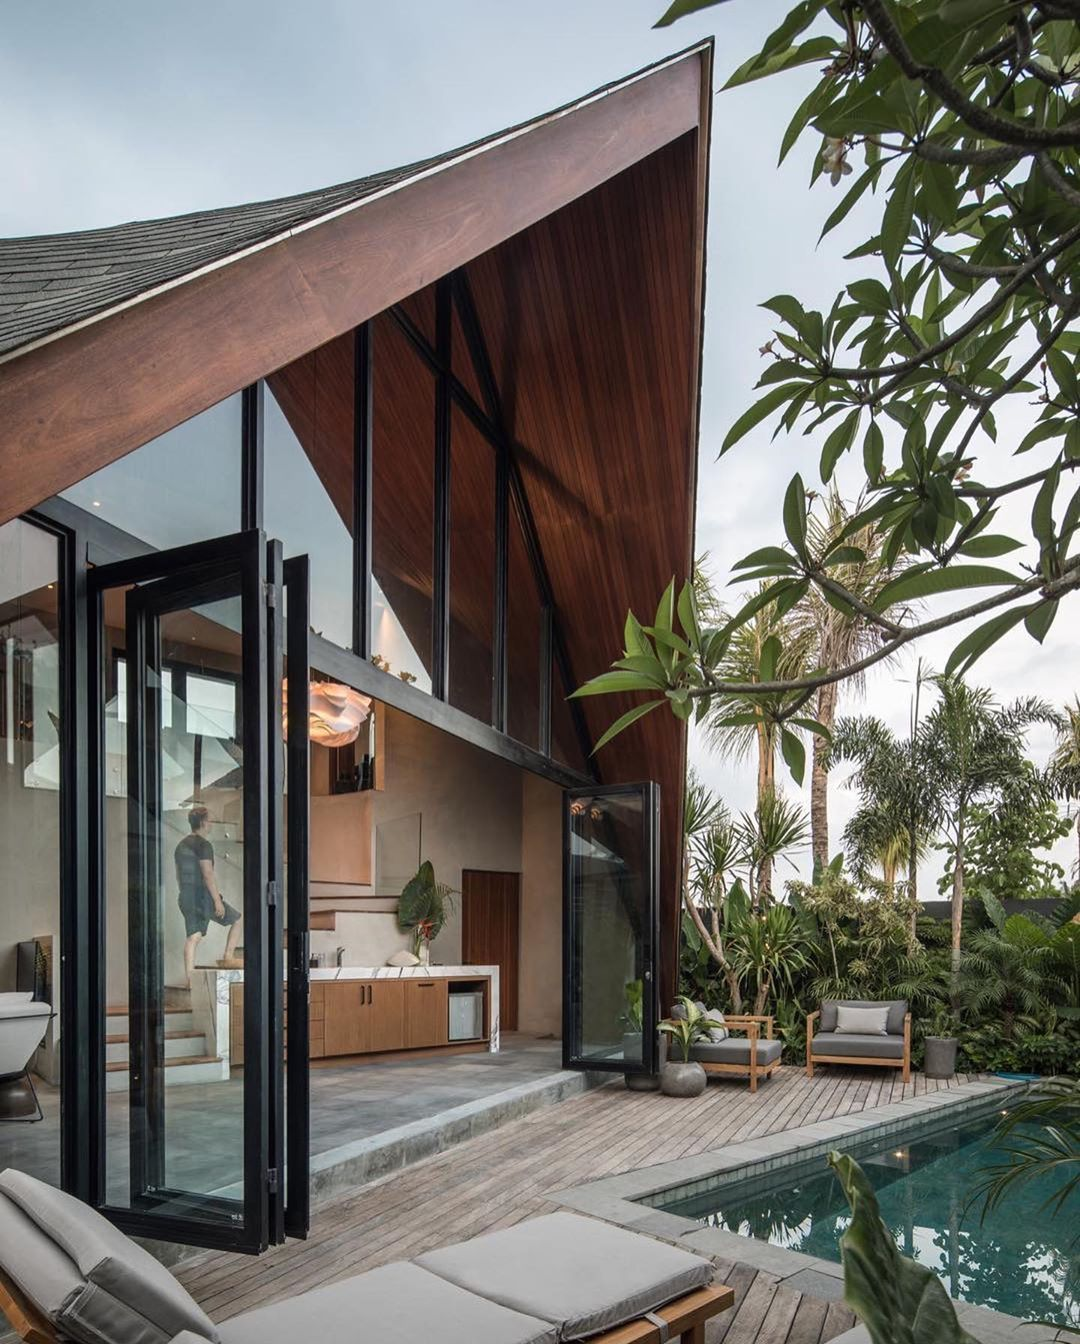 Artsytecture On Instagram River House Bali Designed By Alexisdornier Located In Bali Indonesia Artsytectur In 2020 Architecture Bali House Modern House Exterior